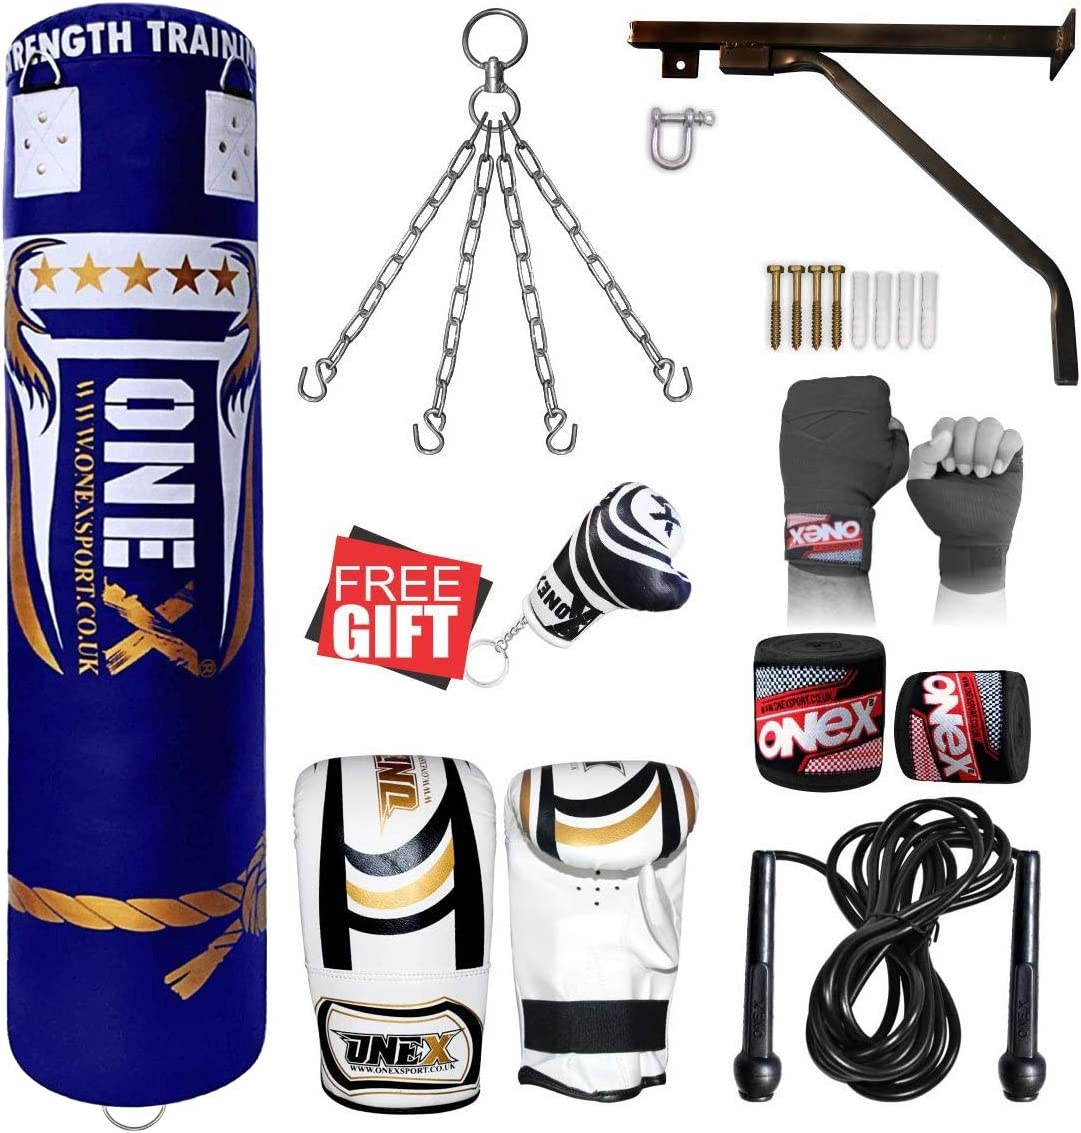 ONEX Heavy Filled 11 Piece 5ft Boxing Punch Bag